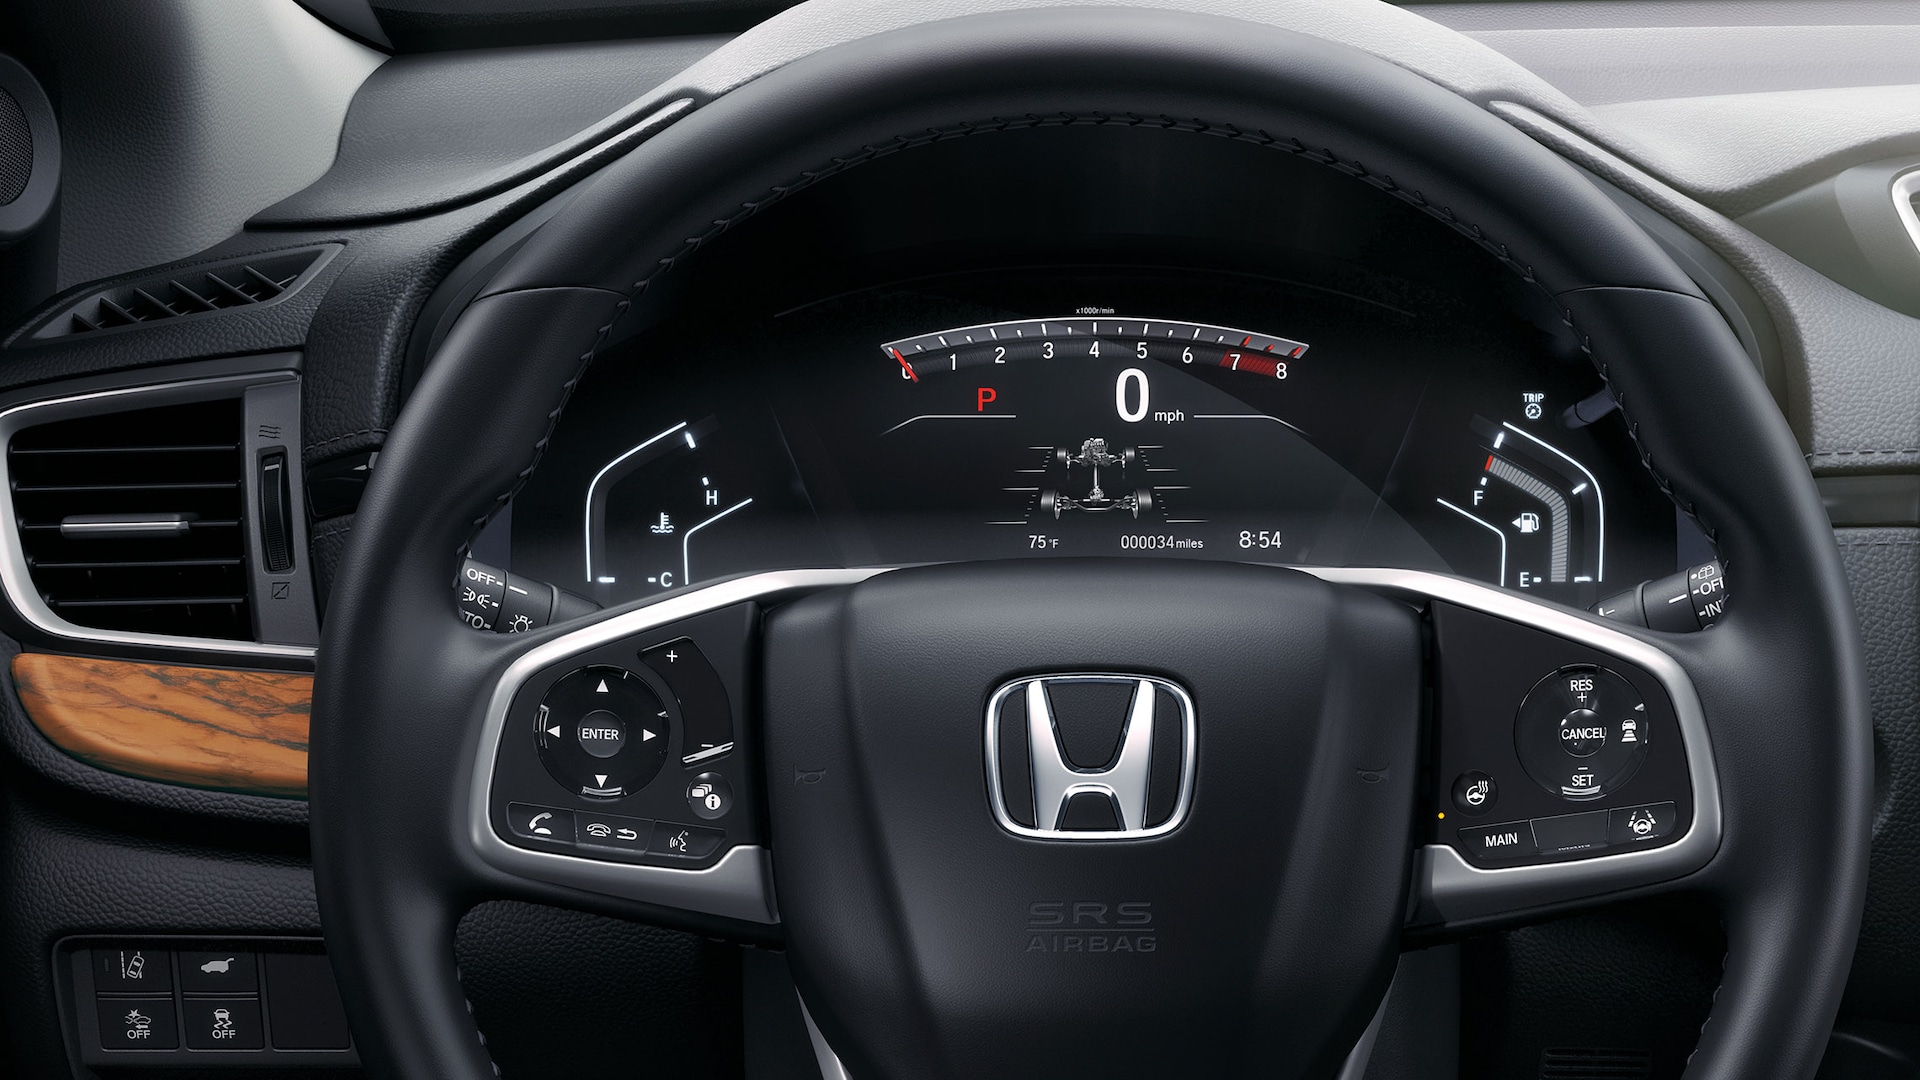 Detail view of the steering wheel and dash in the 2021 Honda CR-V with Gray Leather.